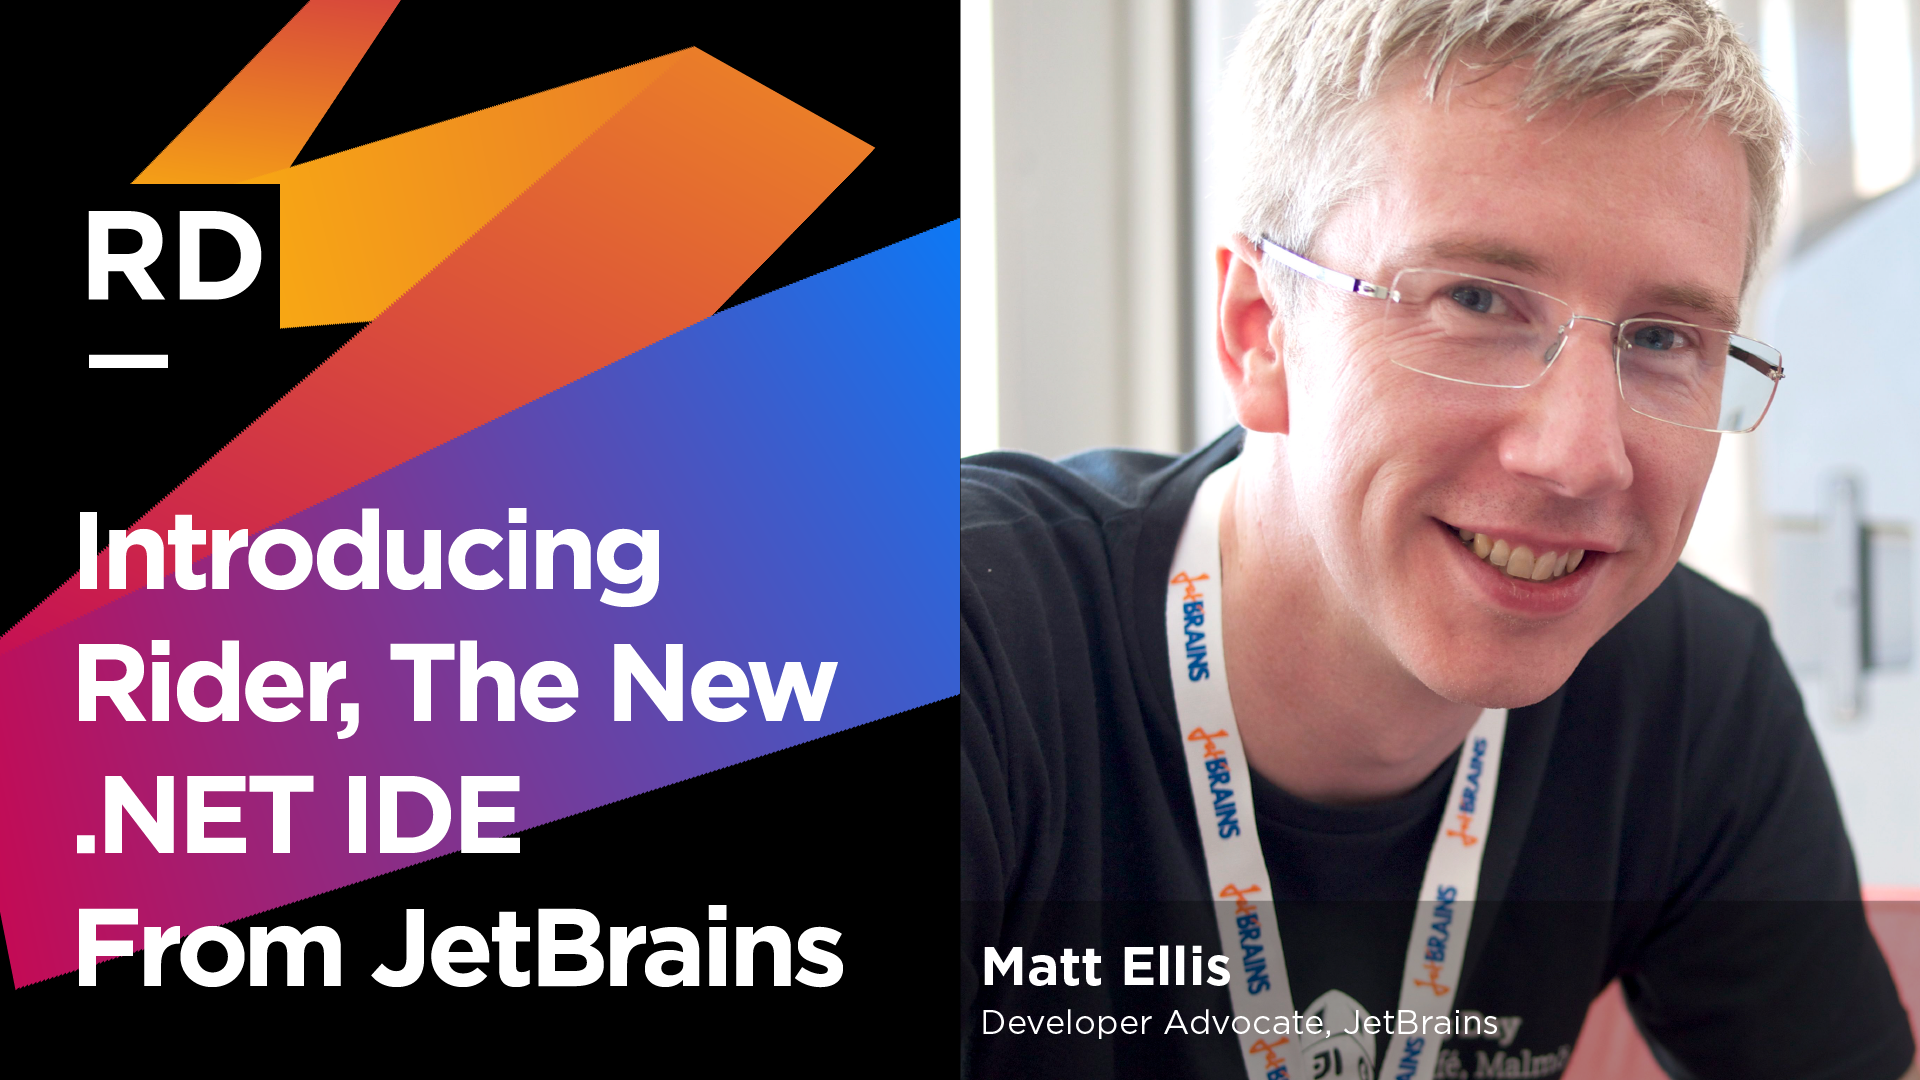 rider_webinar_introducing_rider_the_new_net_ide_from_jetbrains